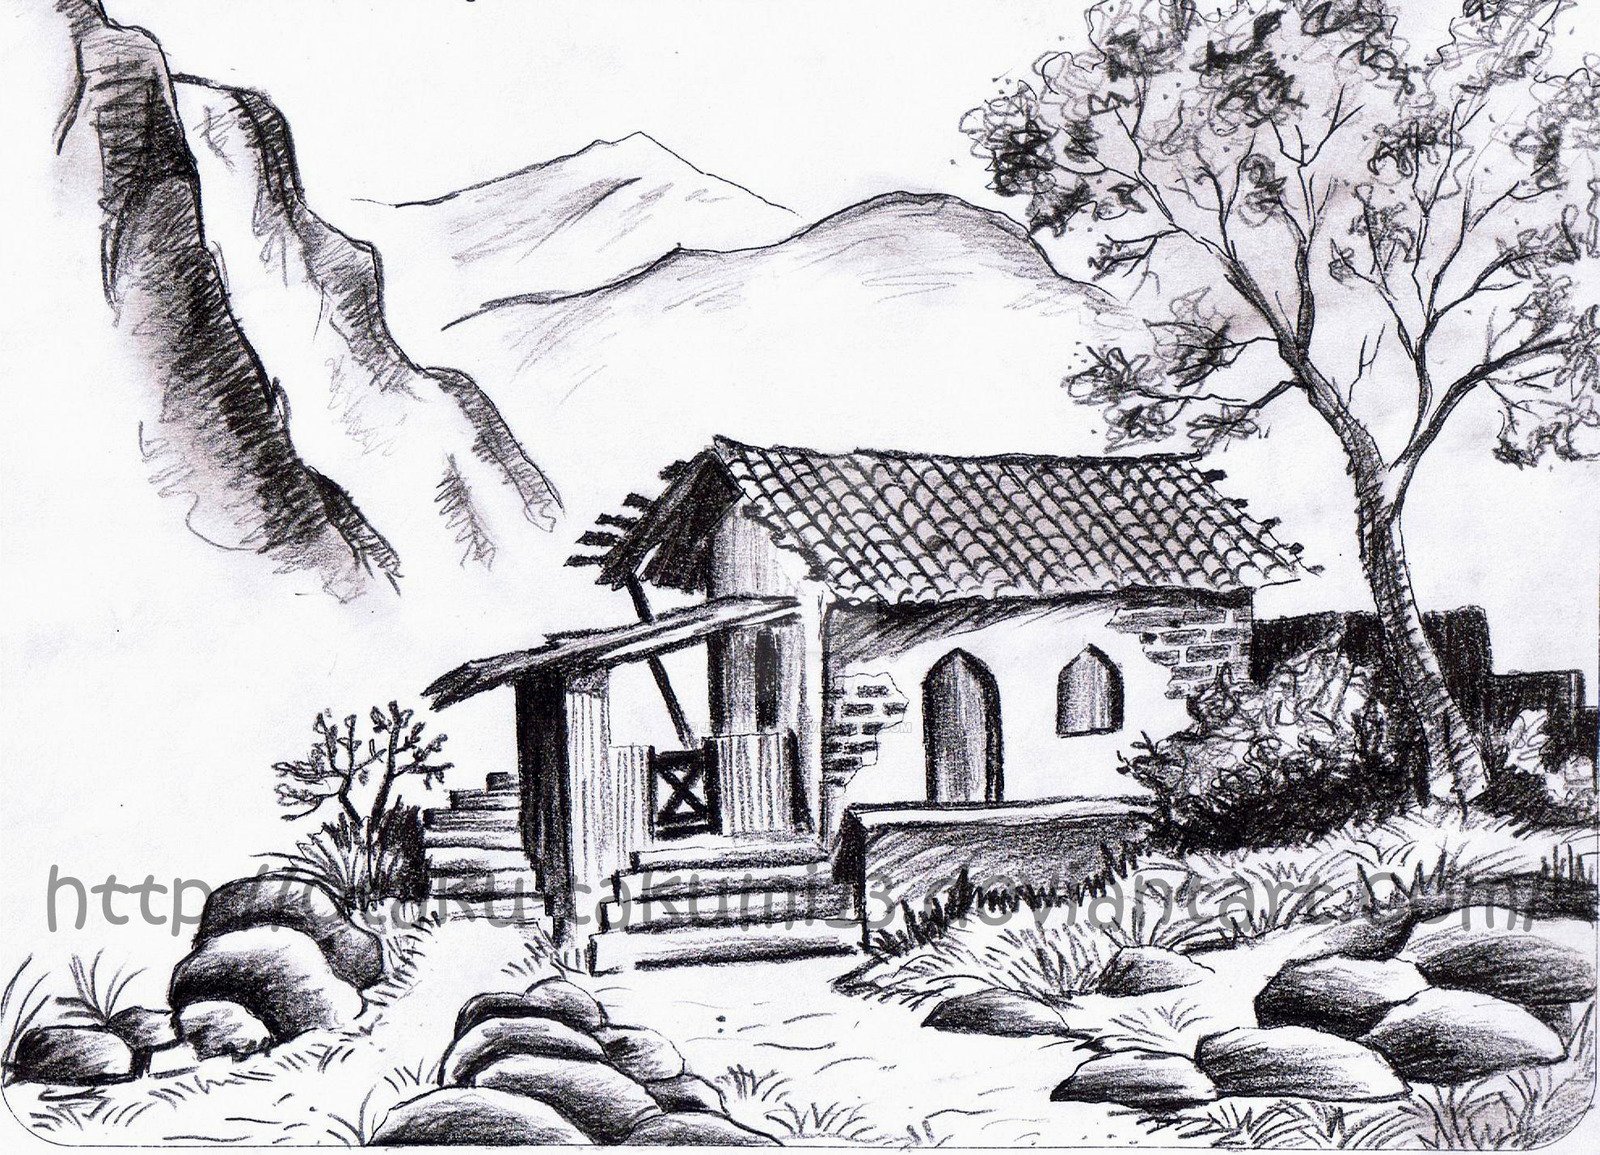 Drawn scenic pencil sketching By drawing Of easy